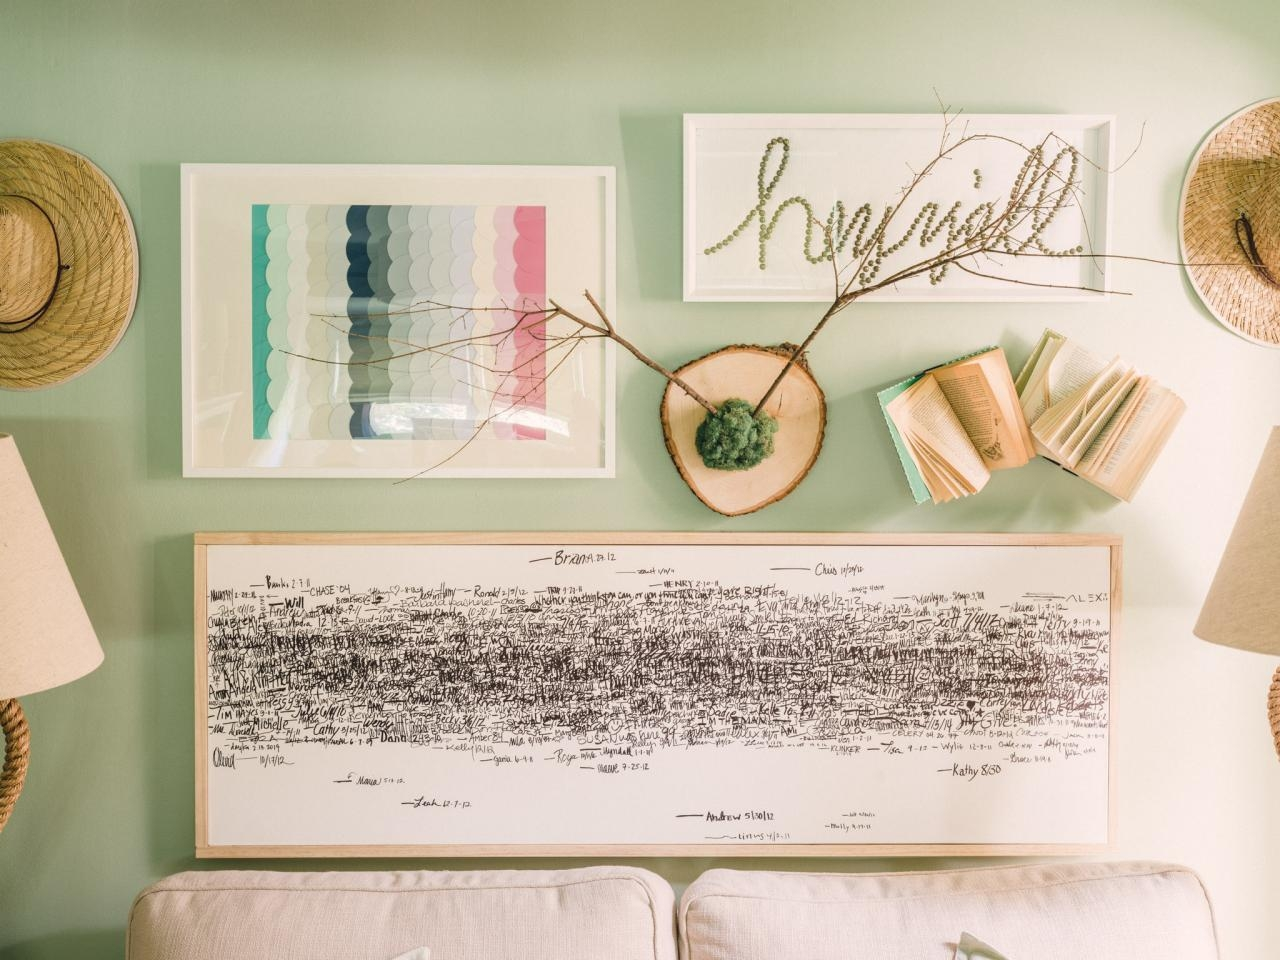 18 Genius Wall Decor Ideas | Hgtv's Decorating & Design Blog | Hgtv with regard to Mother of Pearl Wall Art